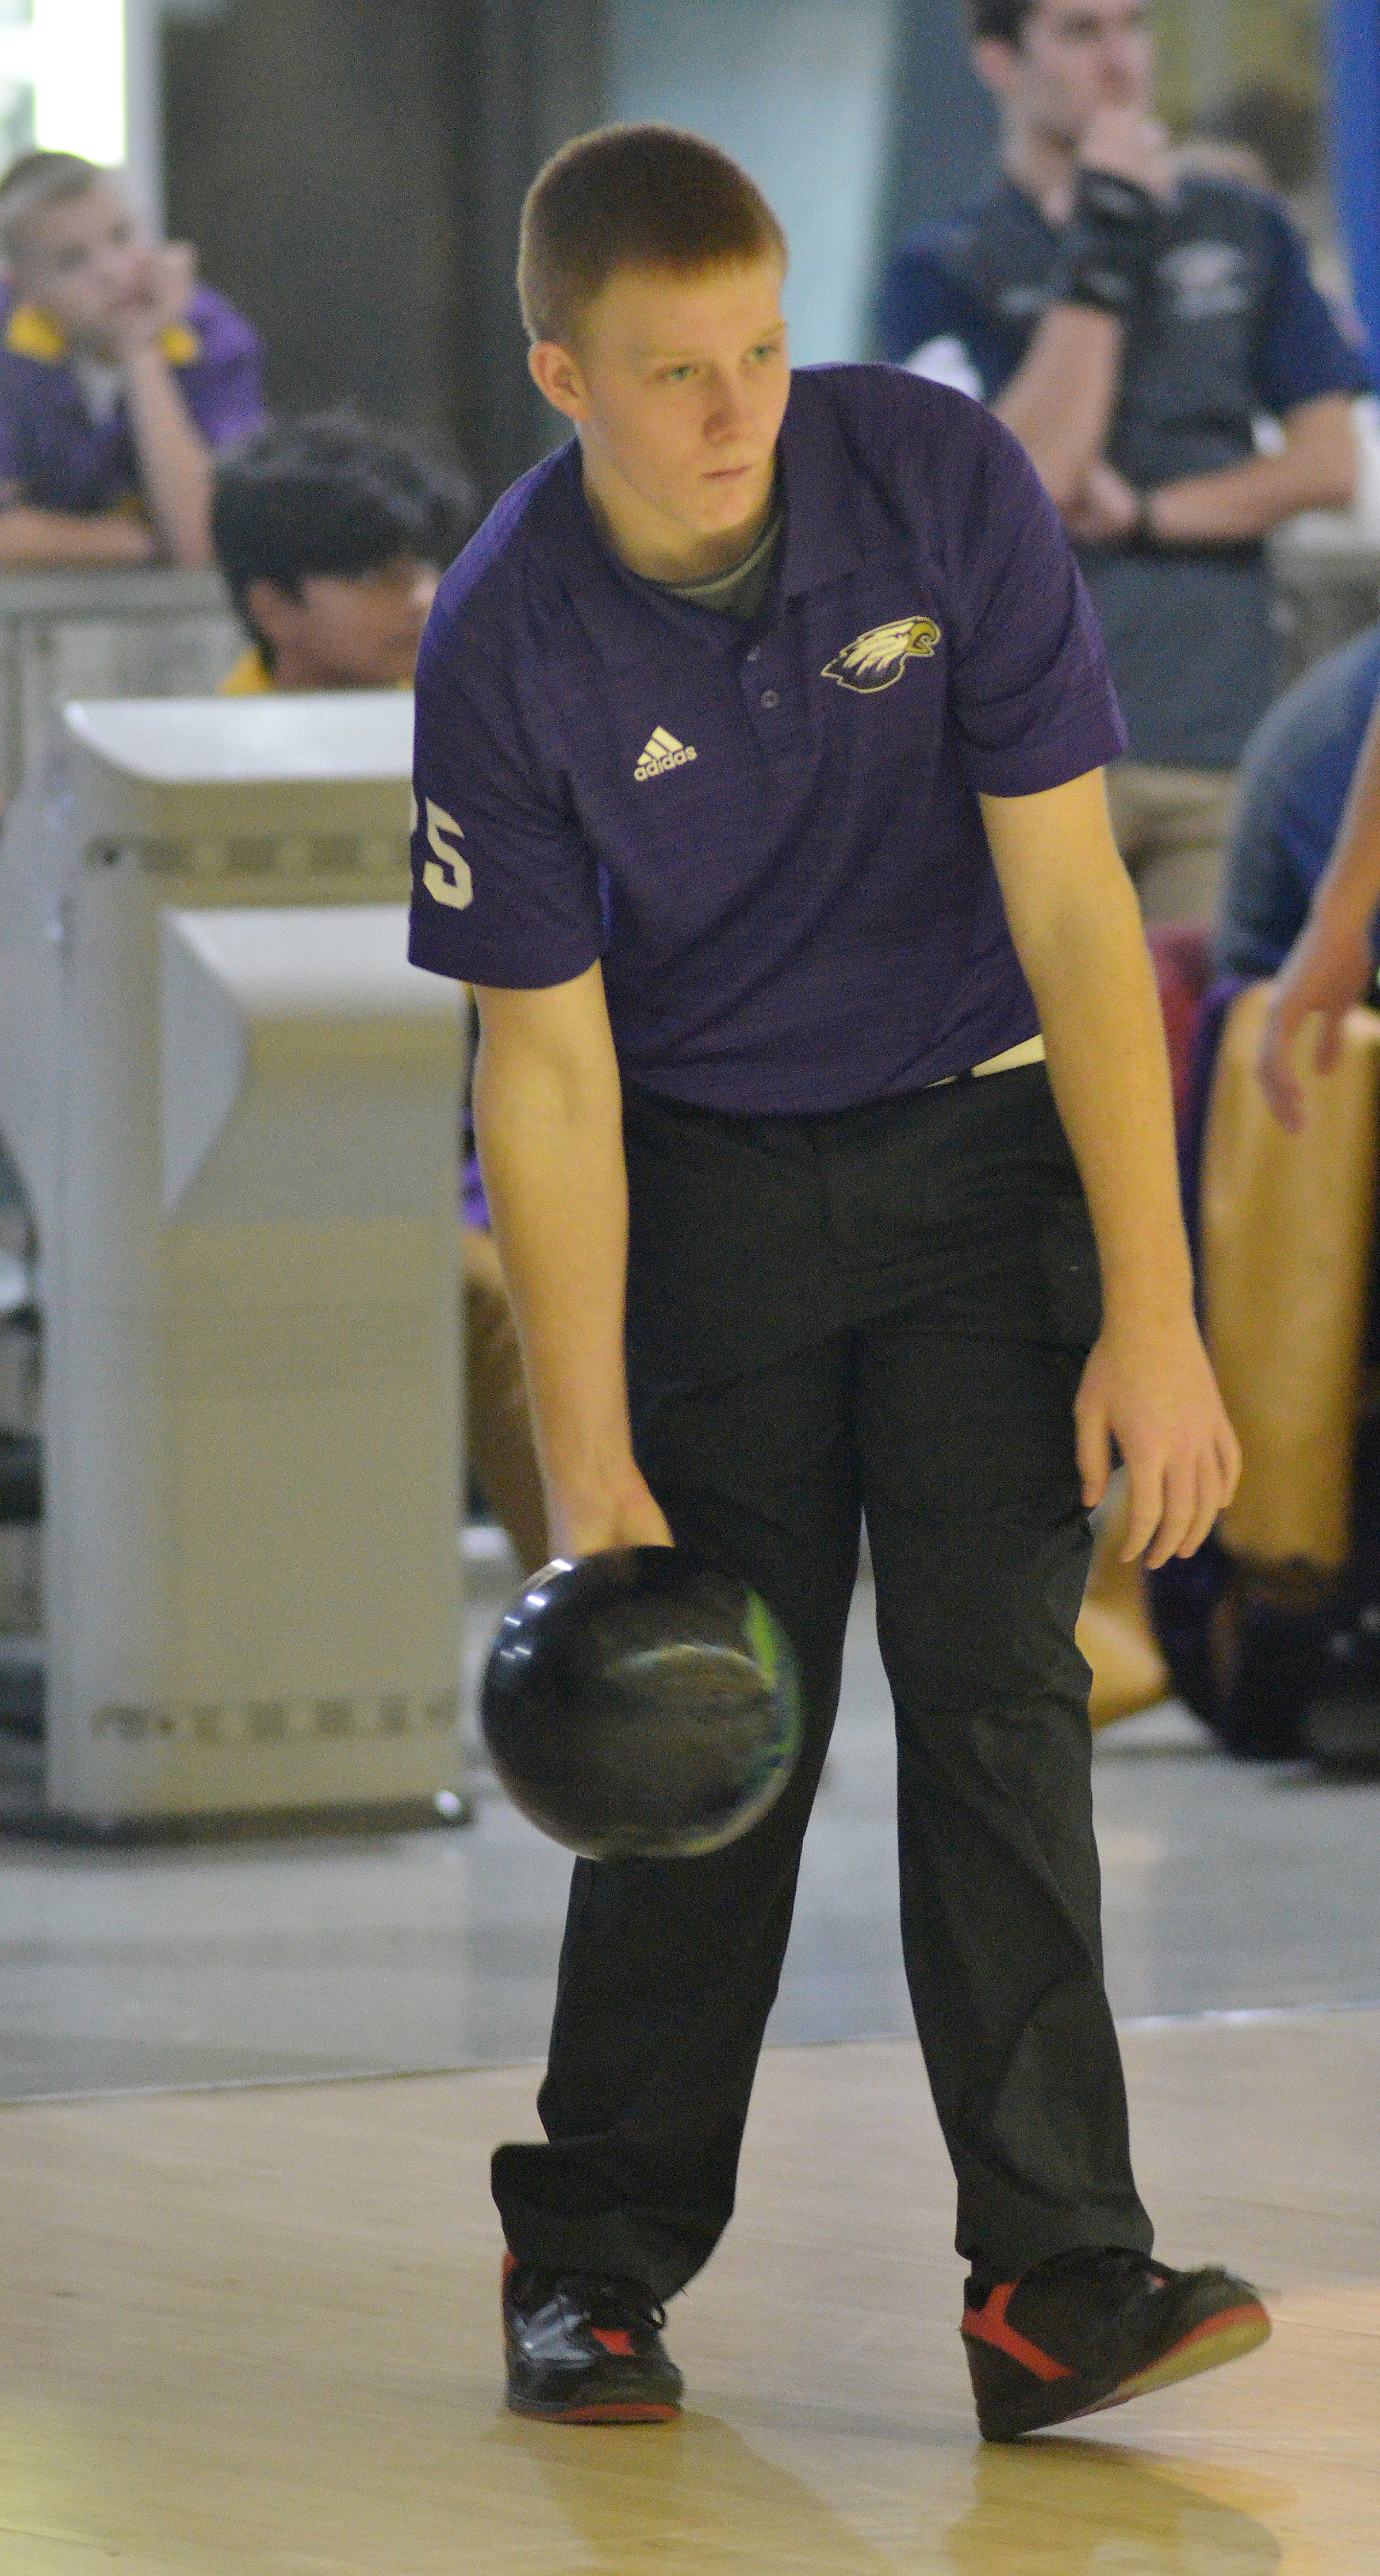 CHS sophomore Patrick Walker competed in KHSAA region competition and finished the singles portion in 10th place. As such, he was named to the all-region team and advances to the state competition on Feb. 8 and 9 in Louisville.